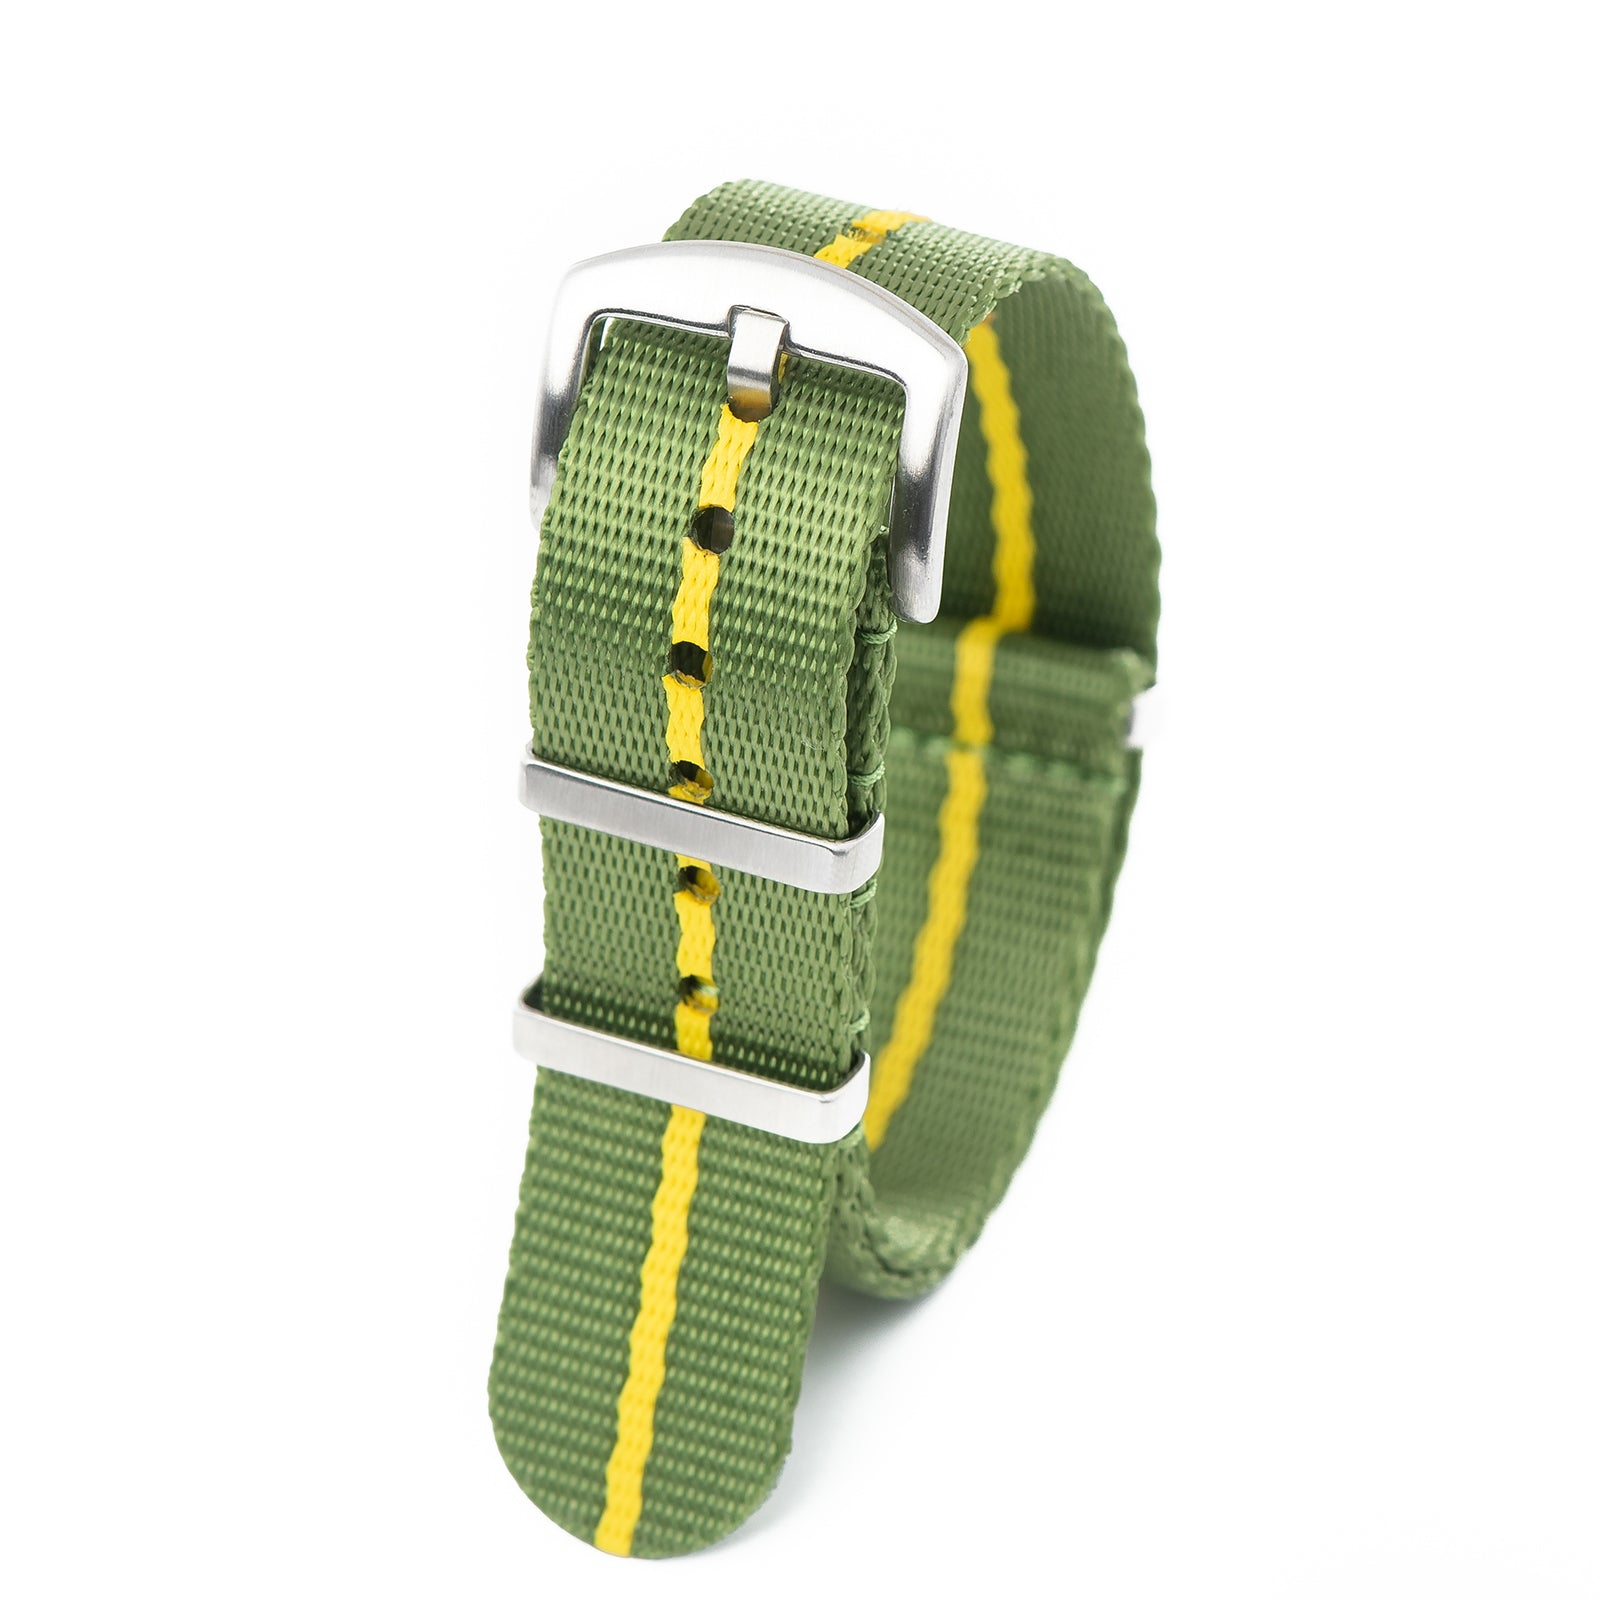 20mm 22mm Premium Seat Belt Nylon NATO Watch Strap - Green Yellow